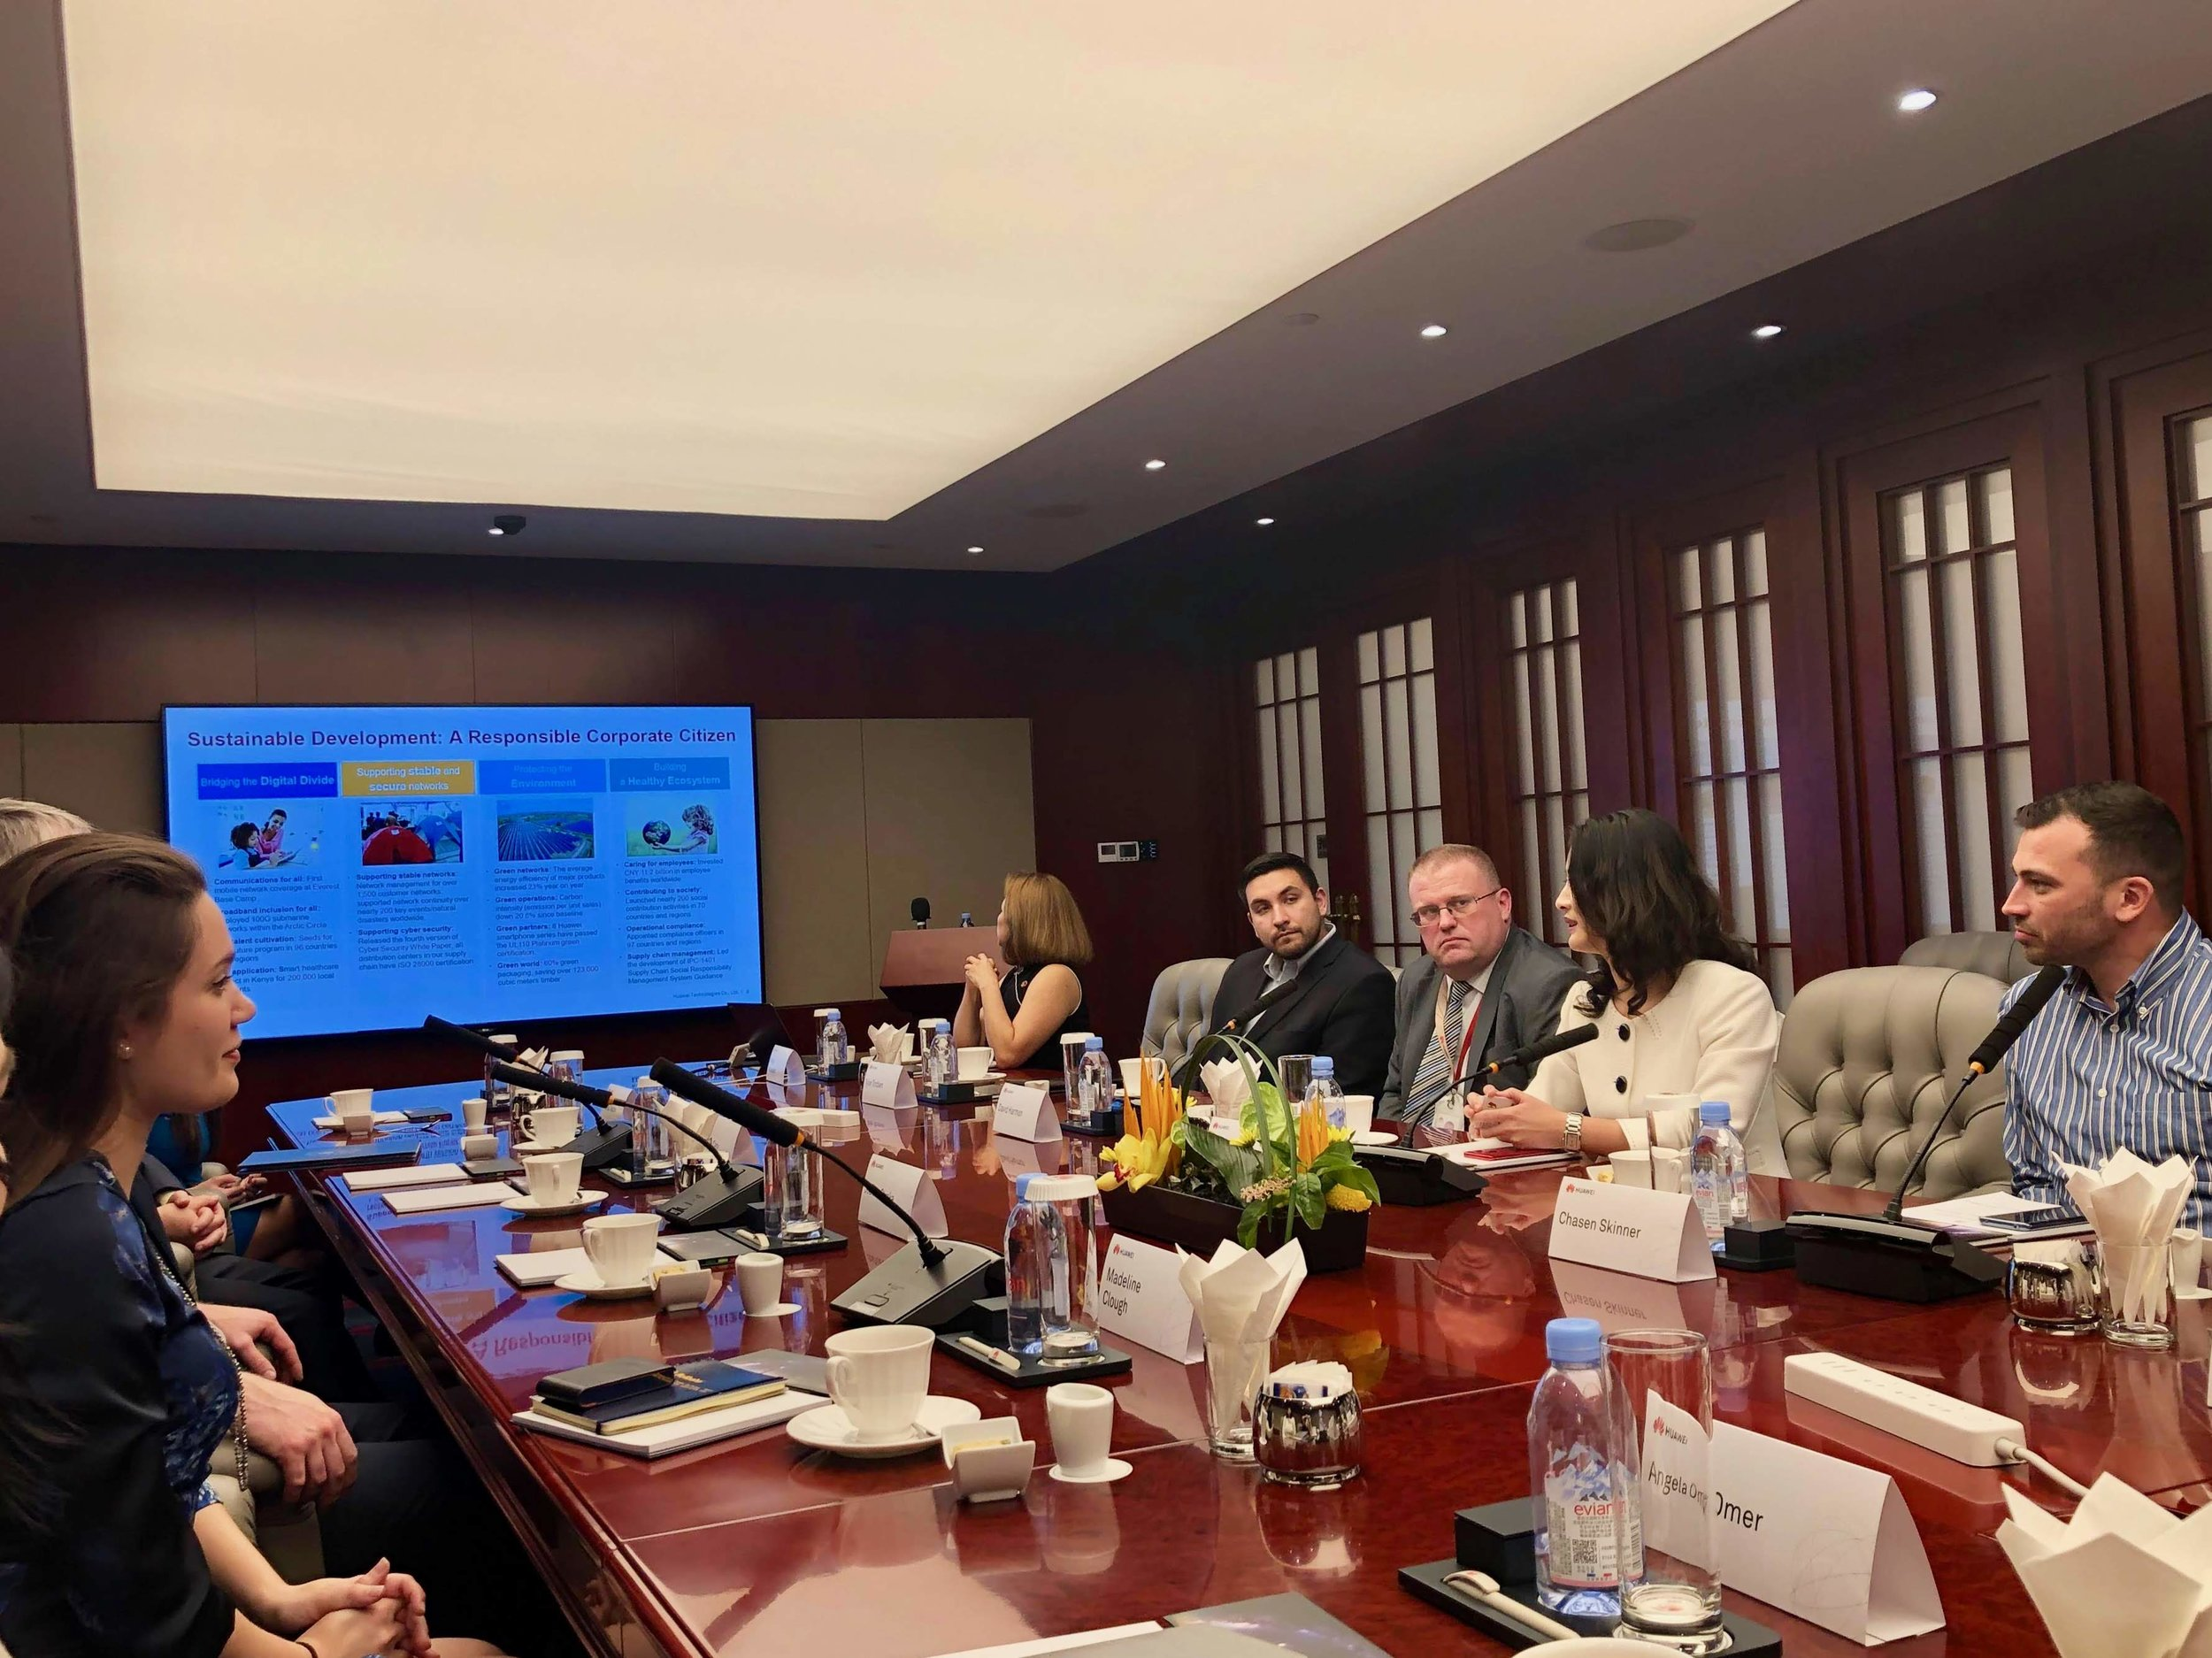 Delegates in a meeting in Shenzhen, China